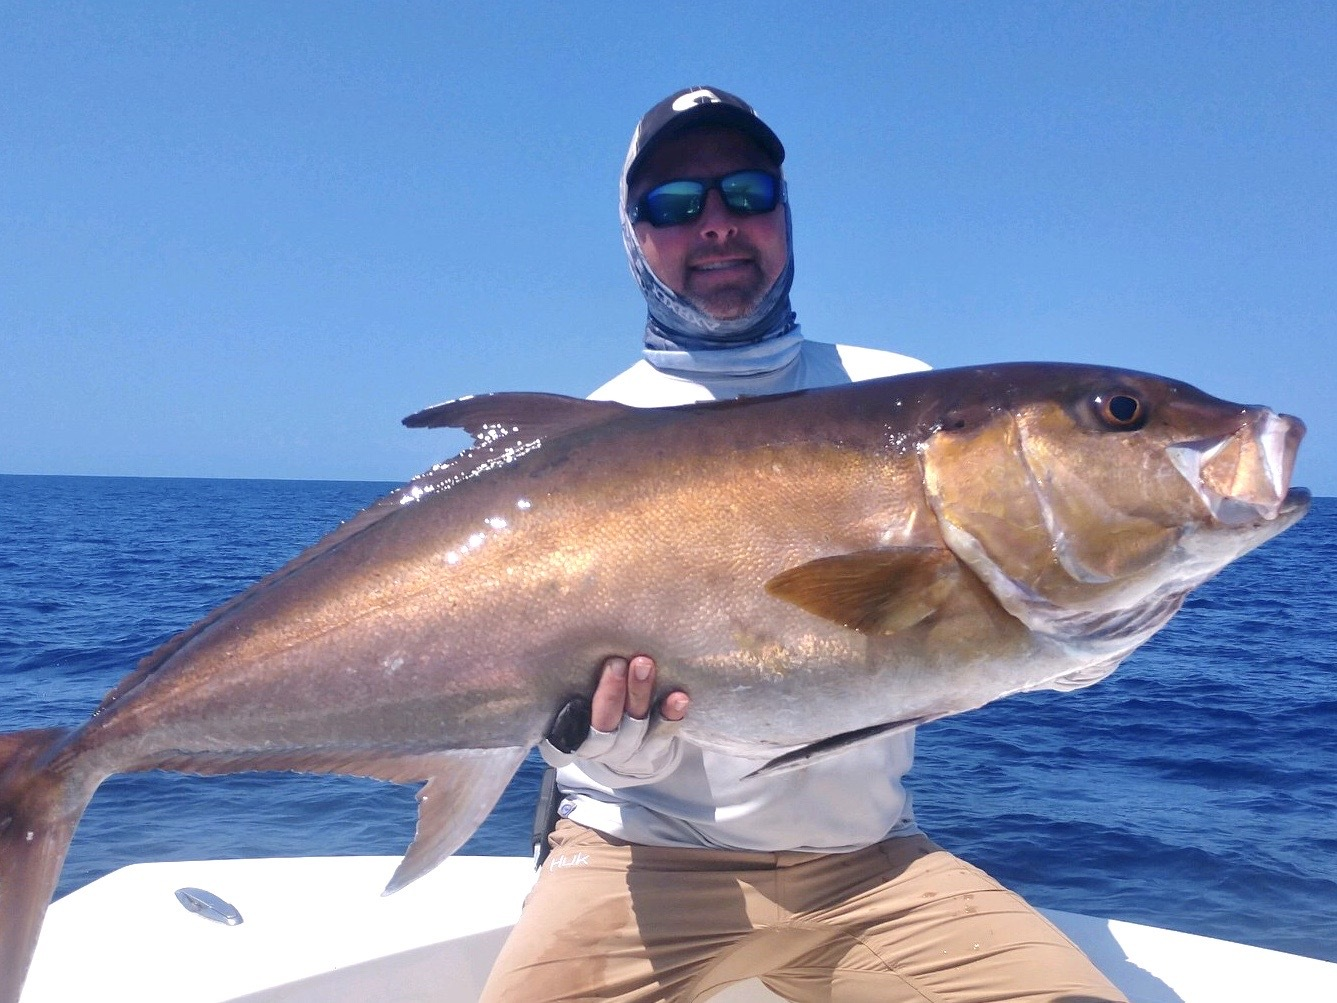 Chris Hatch tussled with this bruiser amberjack while fishing with a group of South Fork anglers in Panama last week.